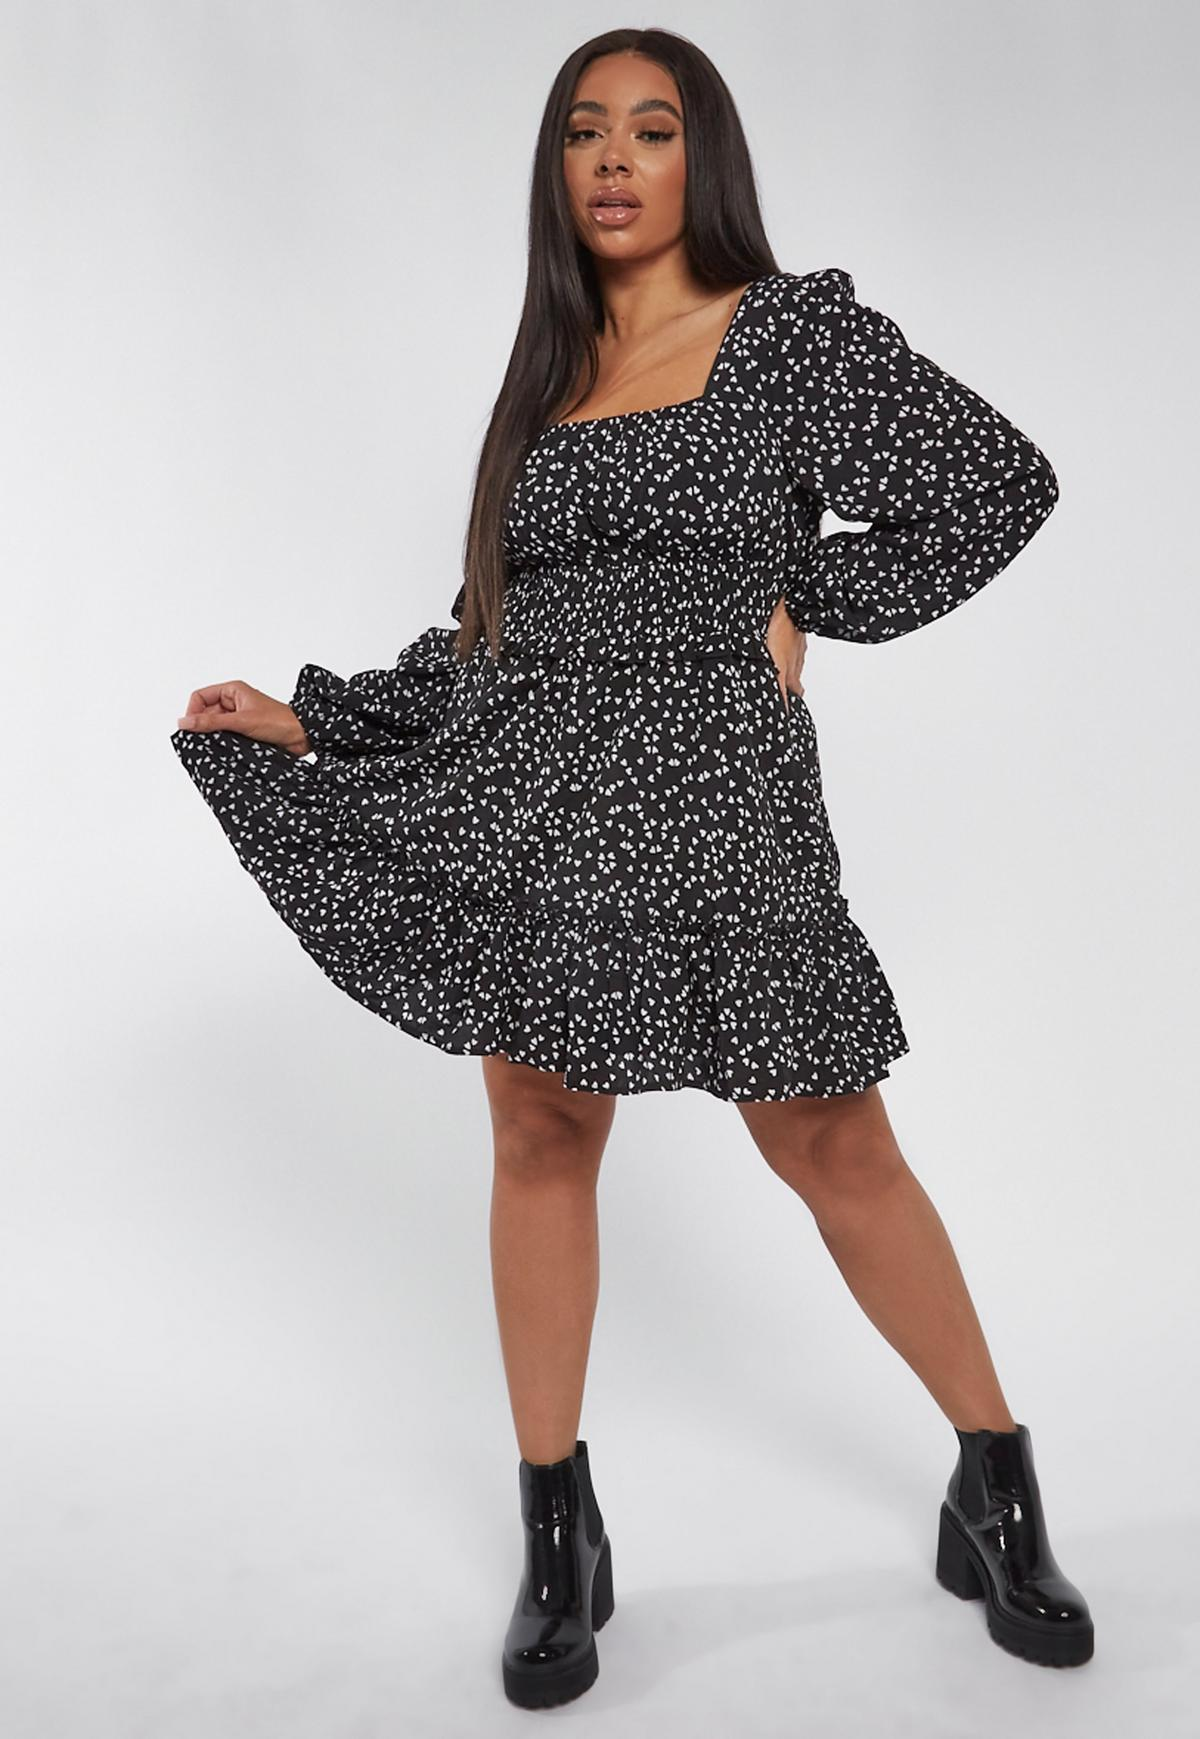 Robe Patineuse Froncee Noire A Imprime Cœur Grande Taille Missguided